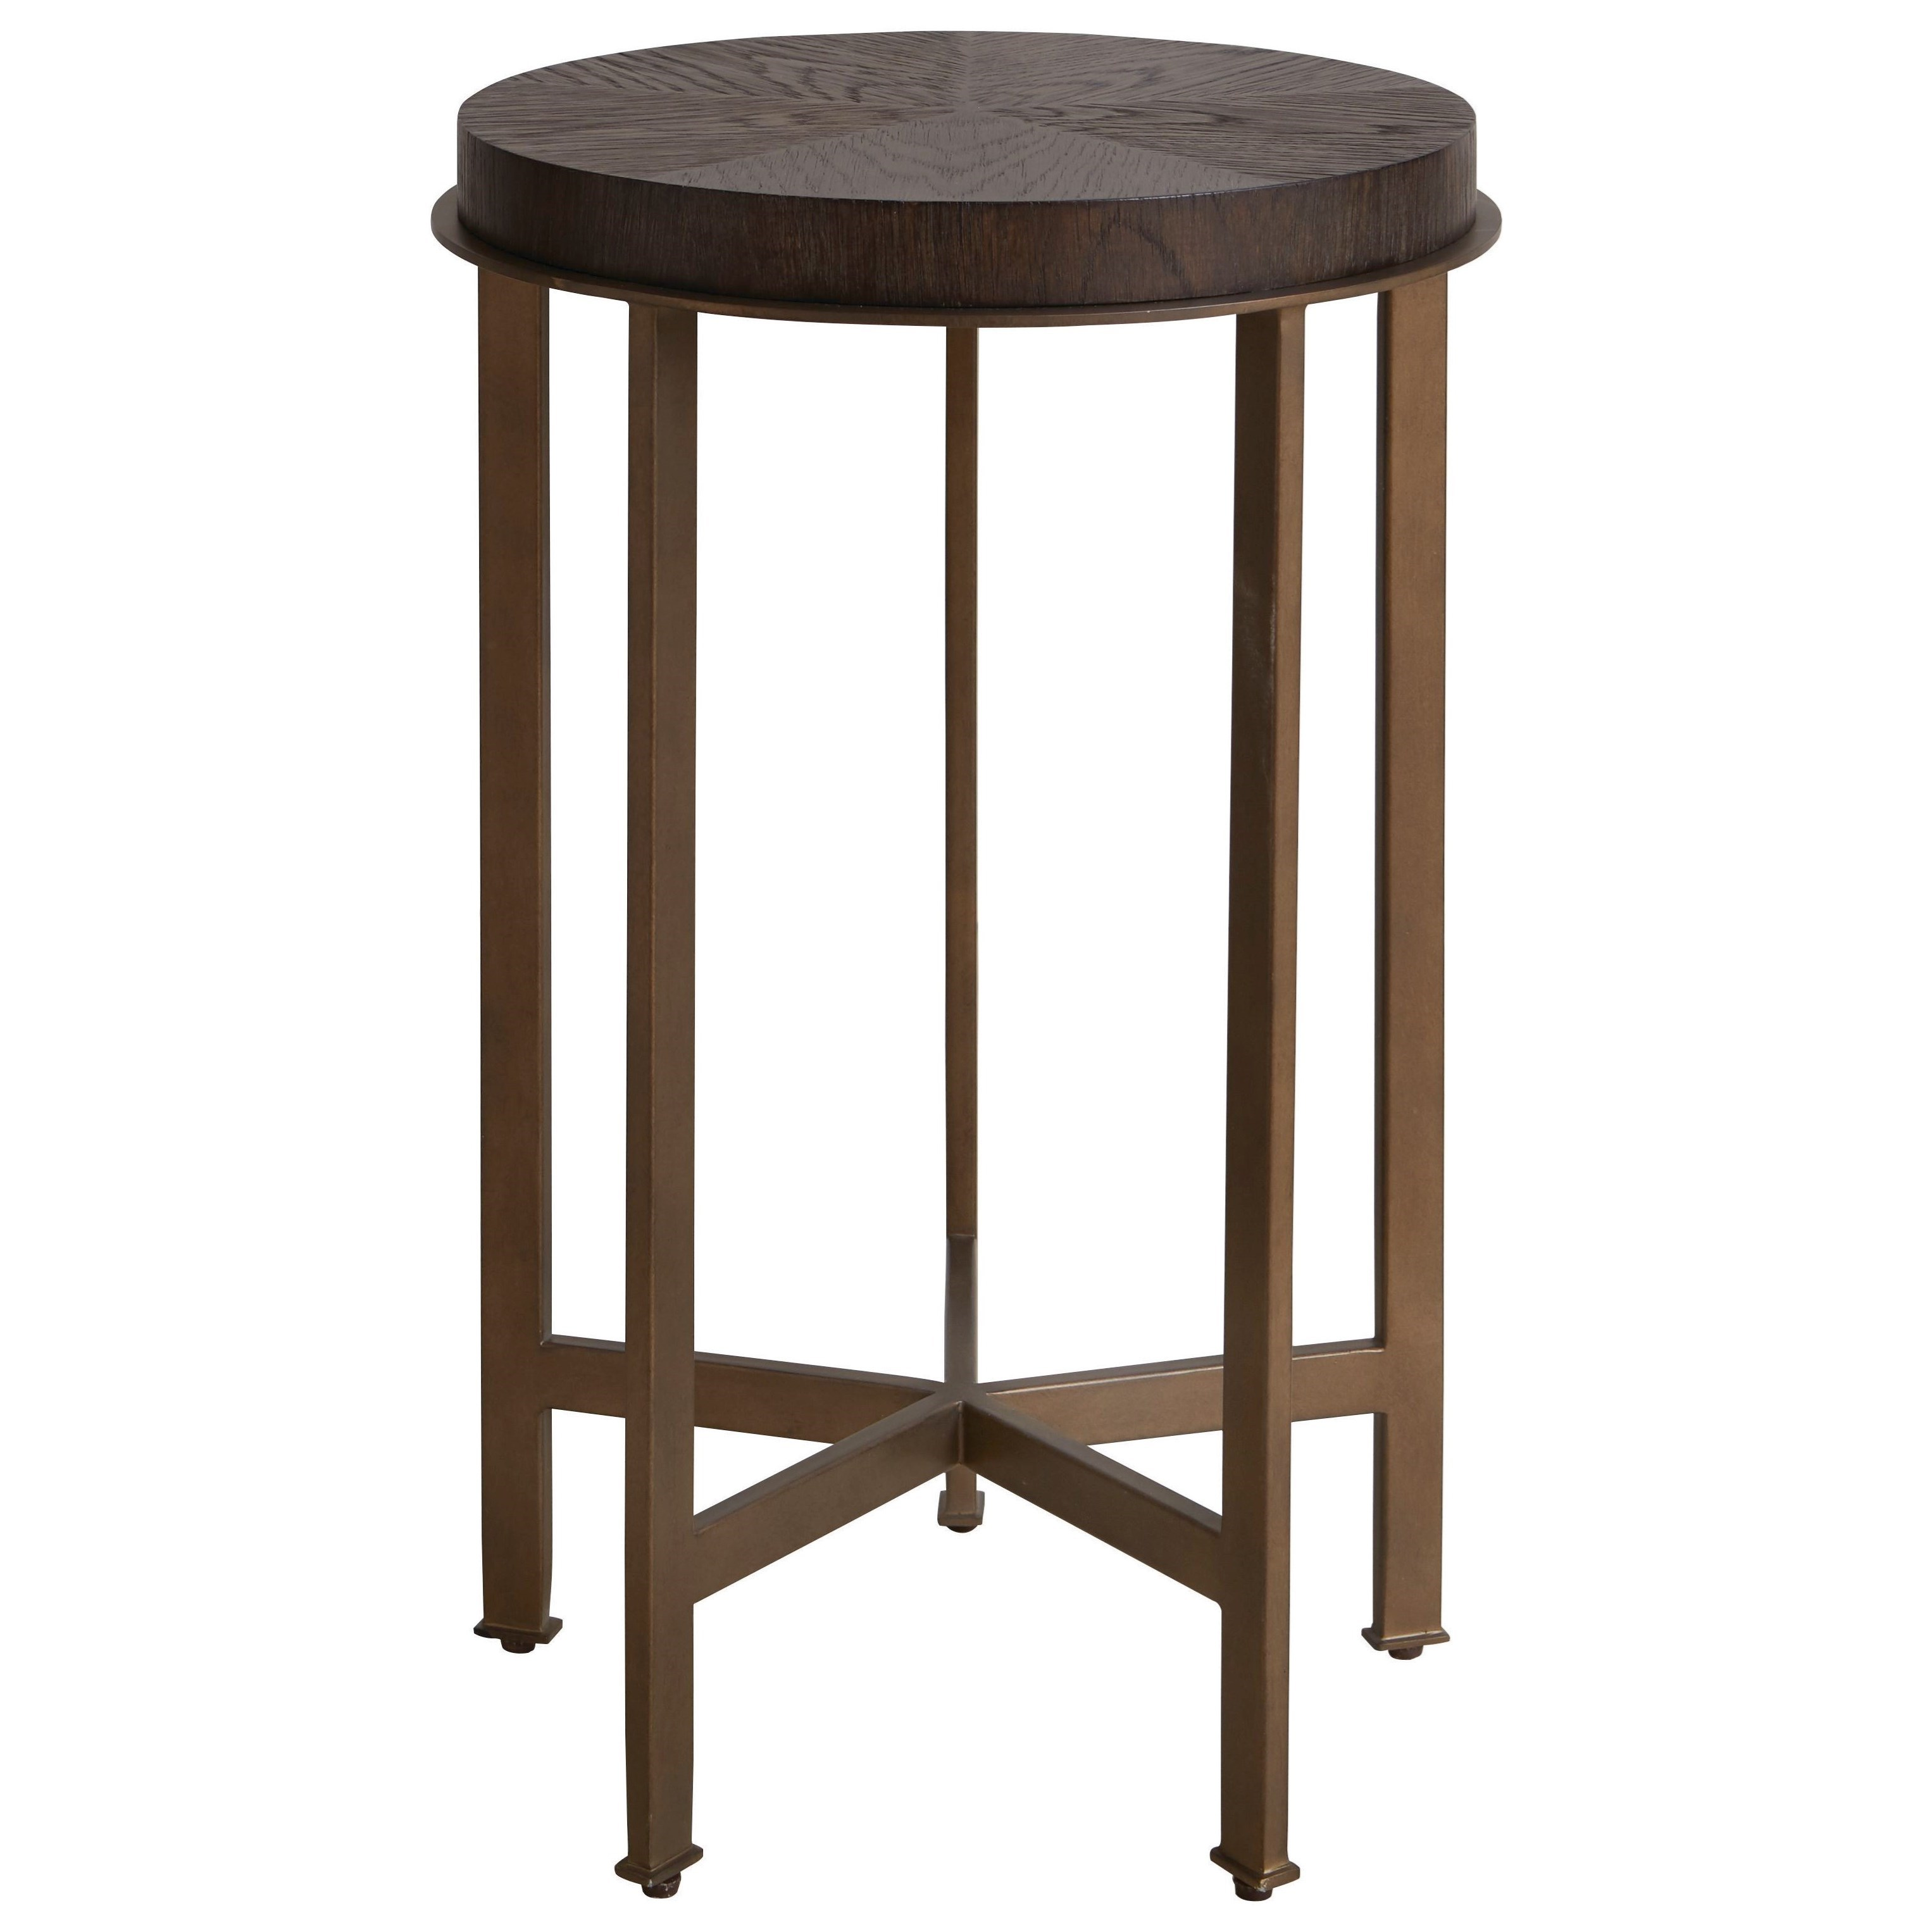 Modern - Axel Corso Lucy and Norman Round Side Table by Bassett at Bassett of Cool Springs